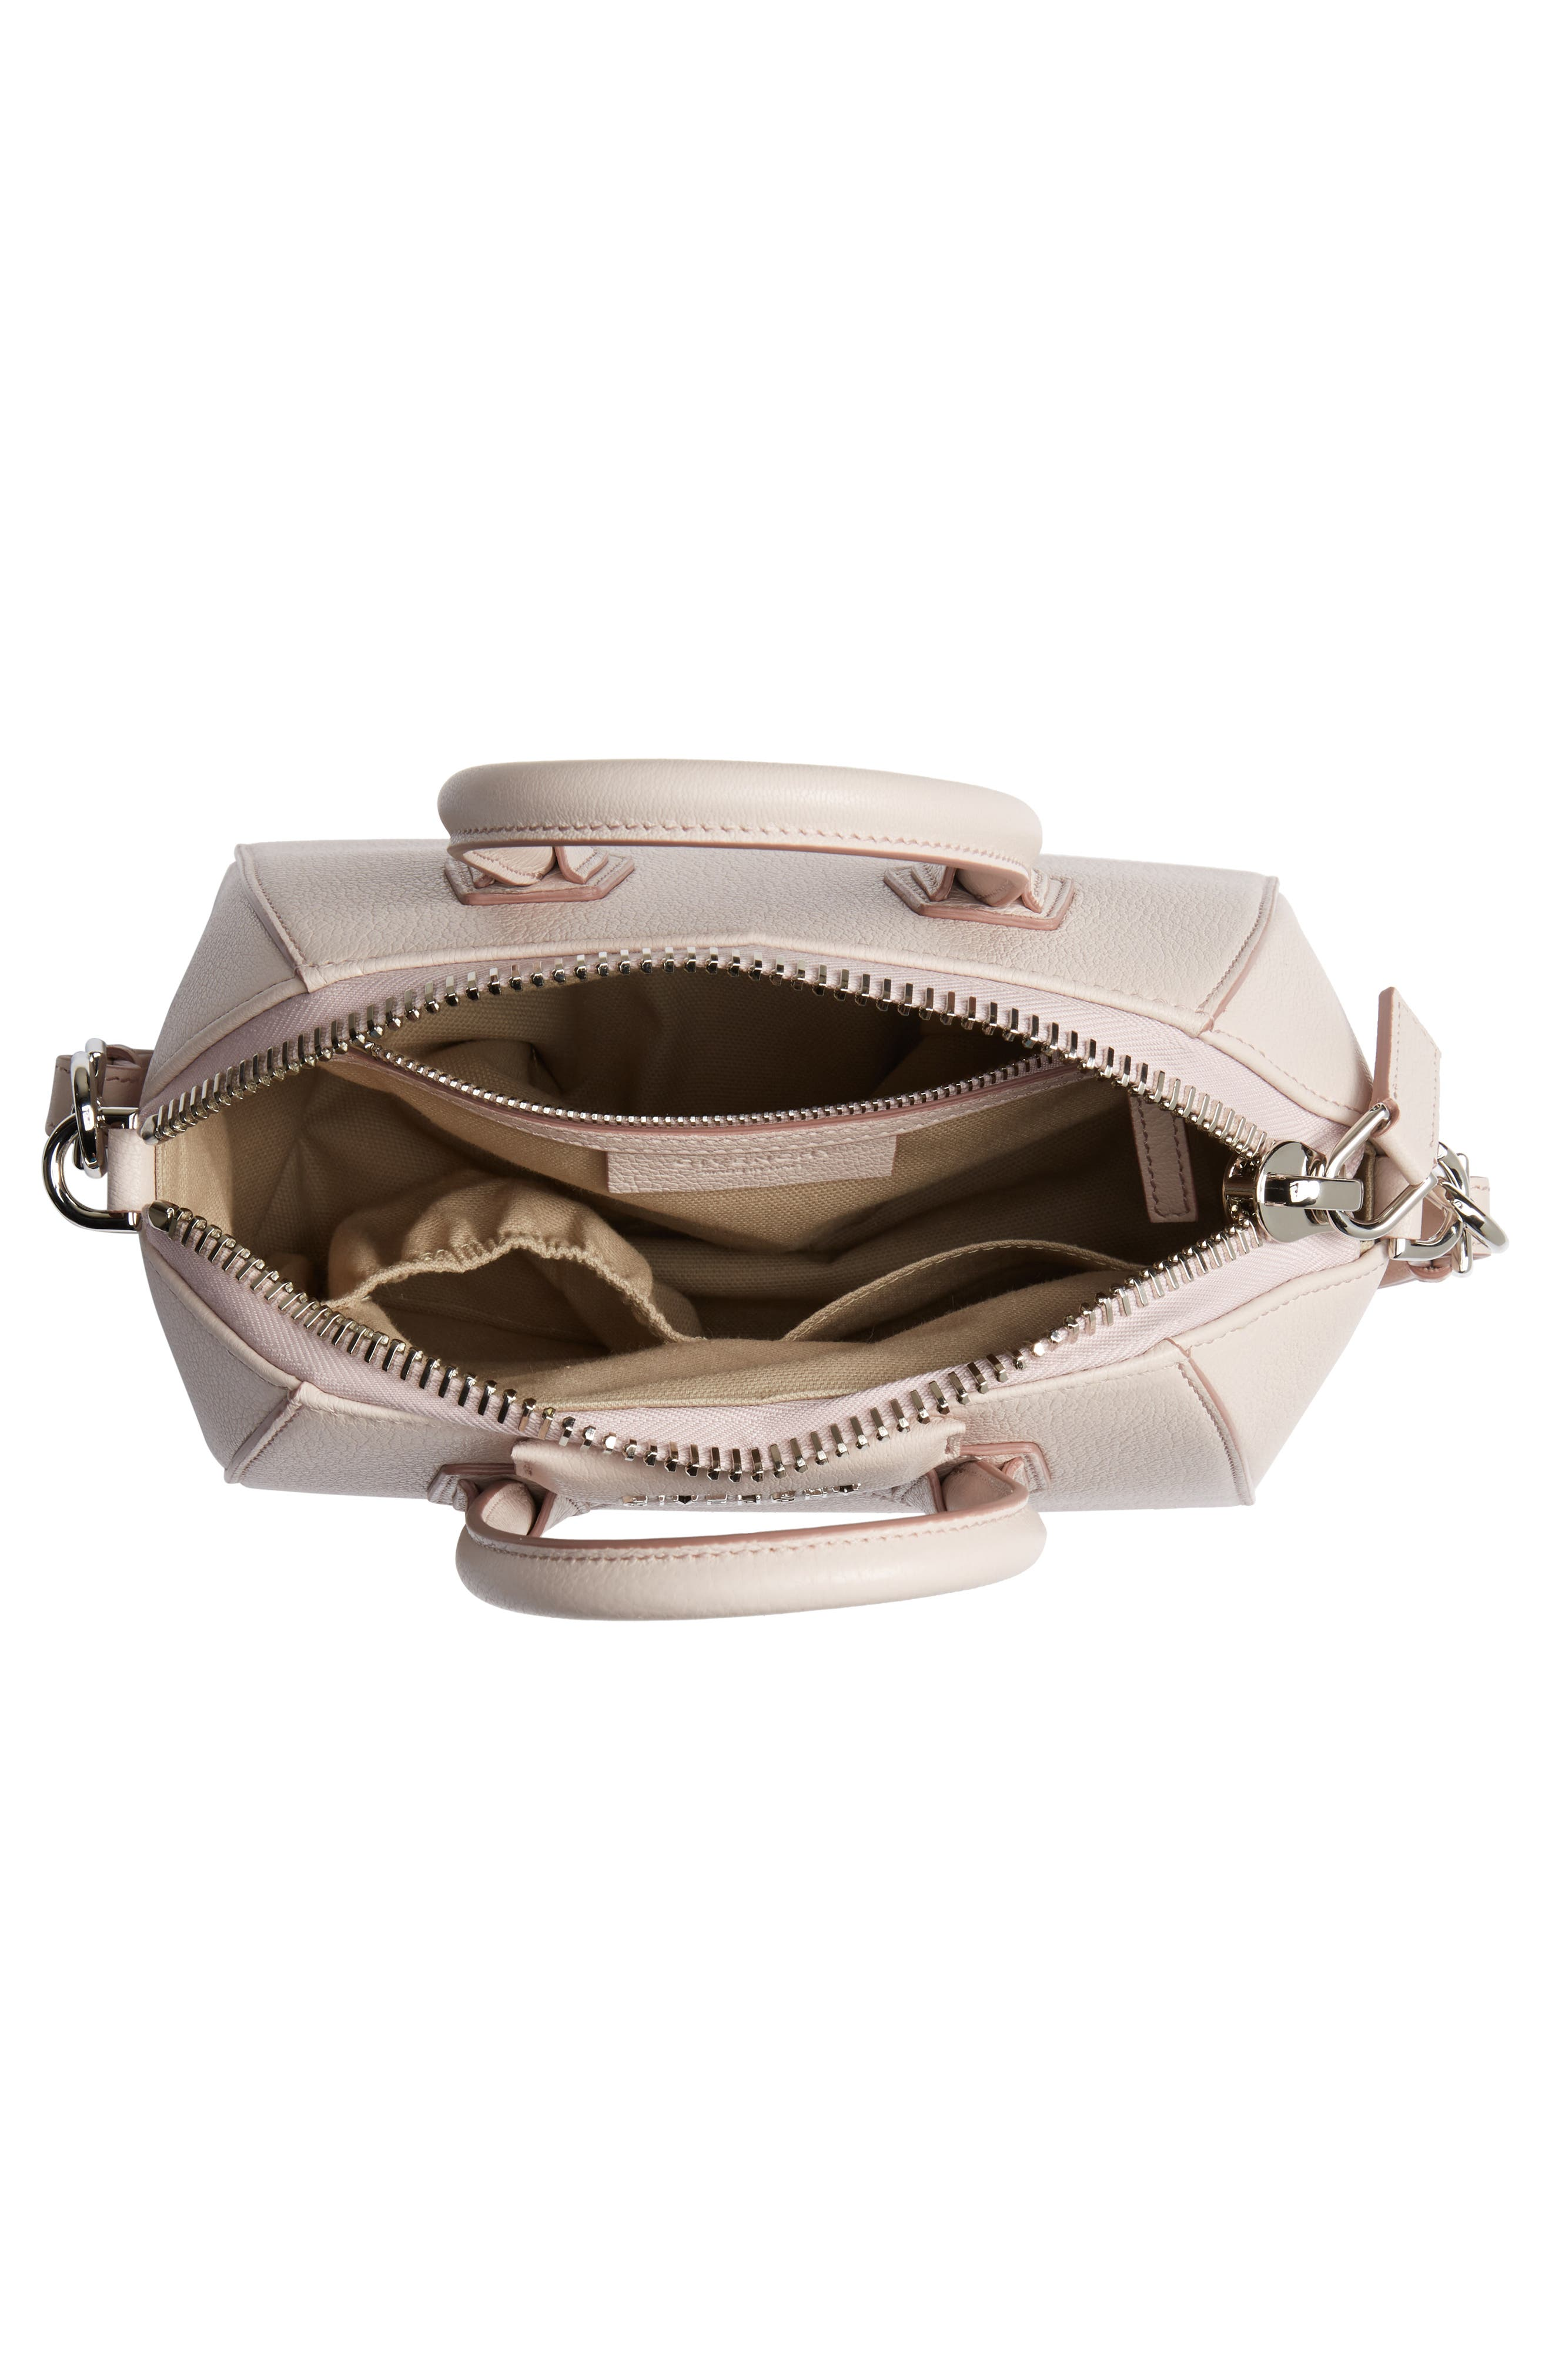 GIVENCHY, 'Mini Antigona' Sugar Leather Satchel, Alternate thumbnail 4, color, PALE PINK